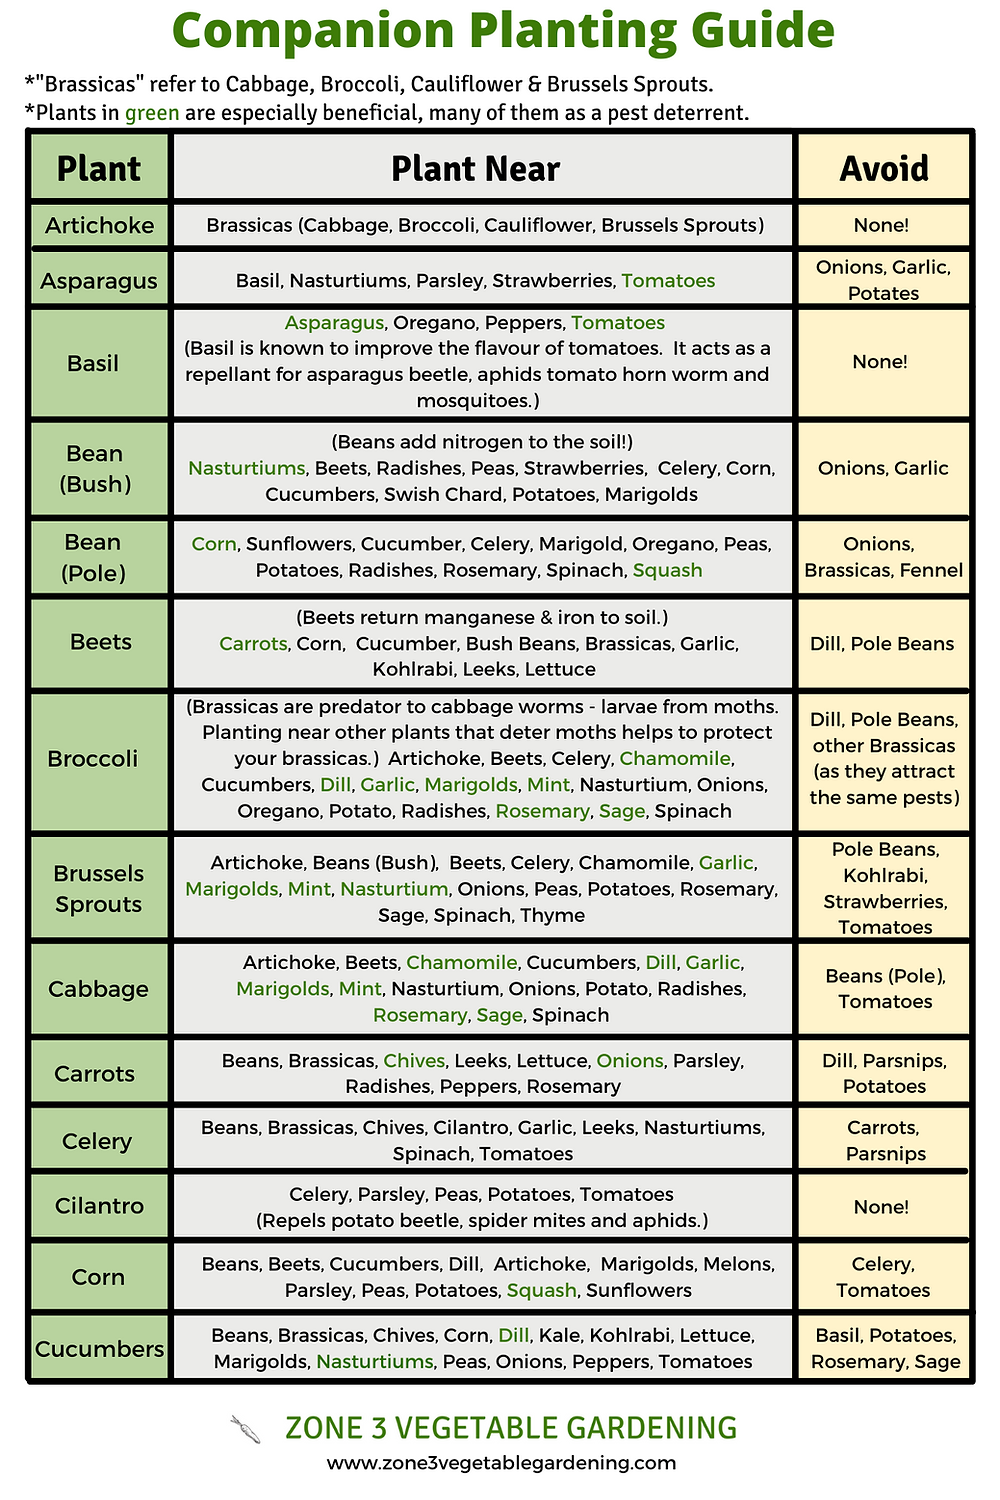 Free printable vegetable and herb companion planting guide, from Calgary Alberta.